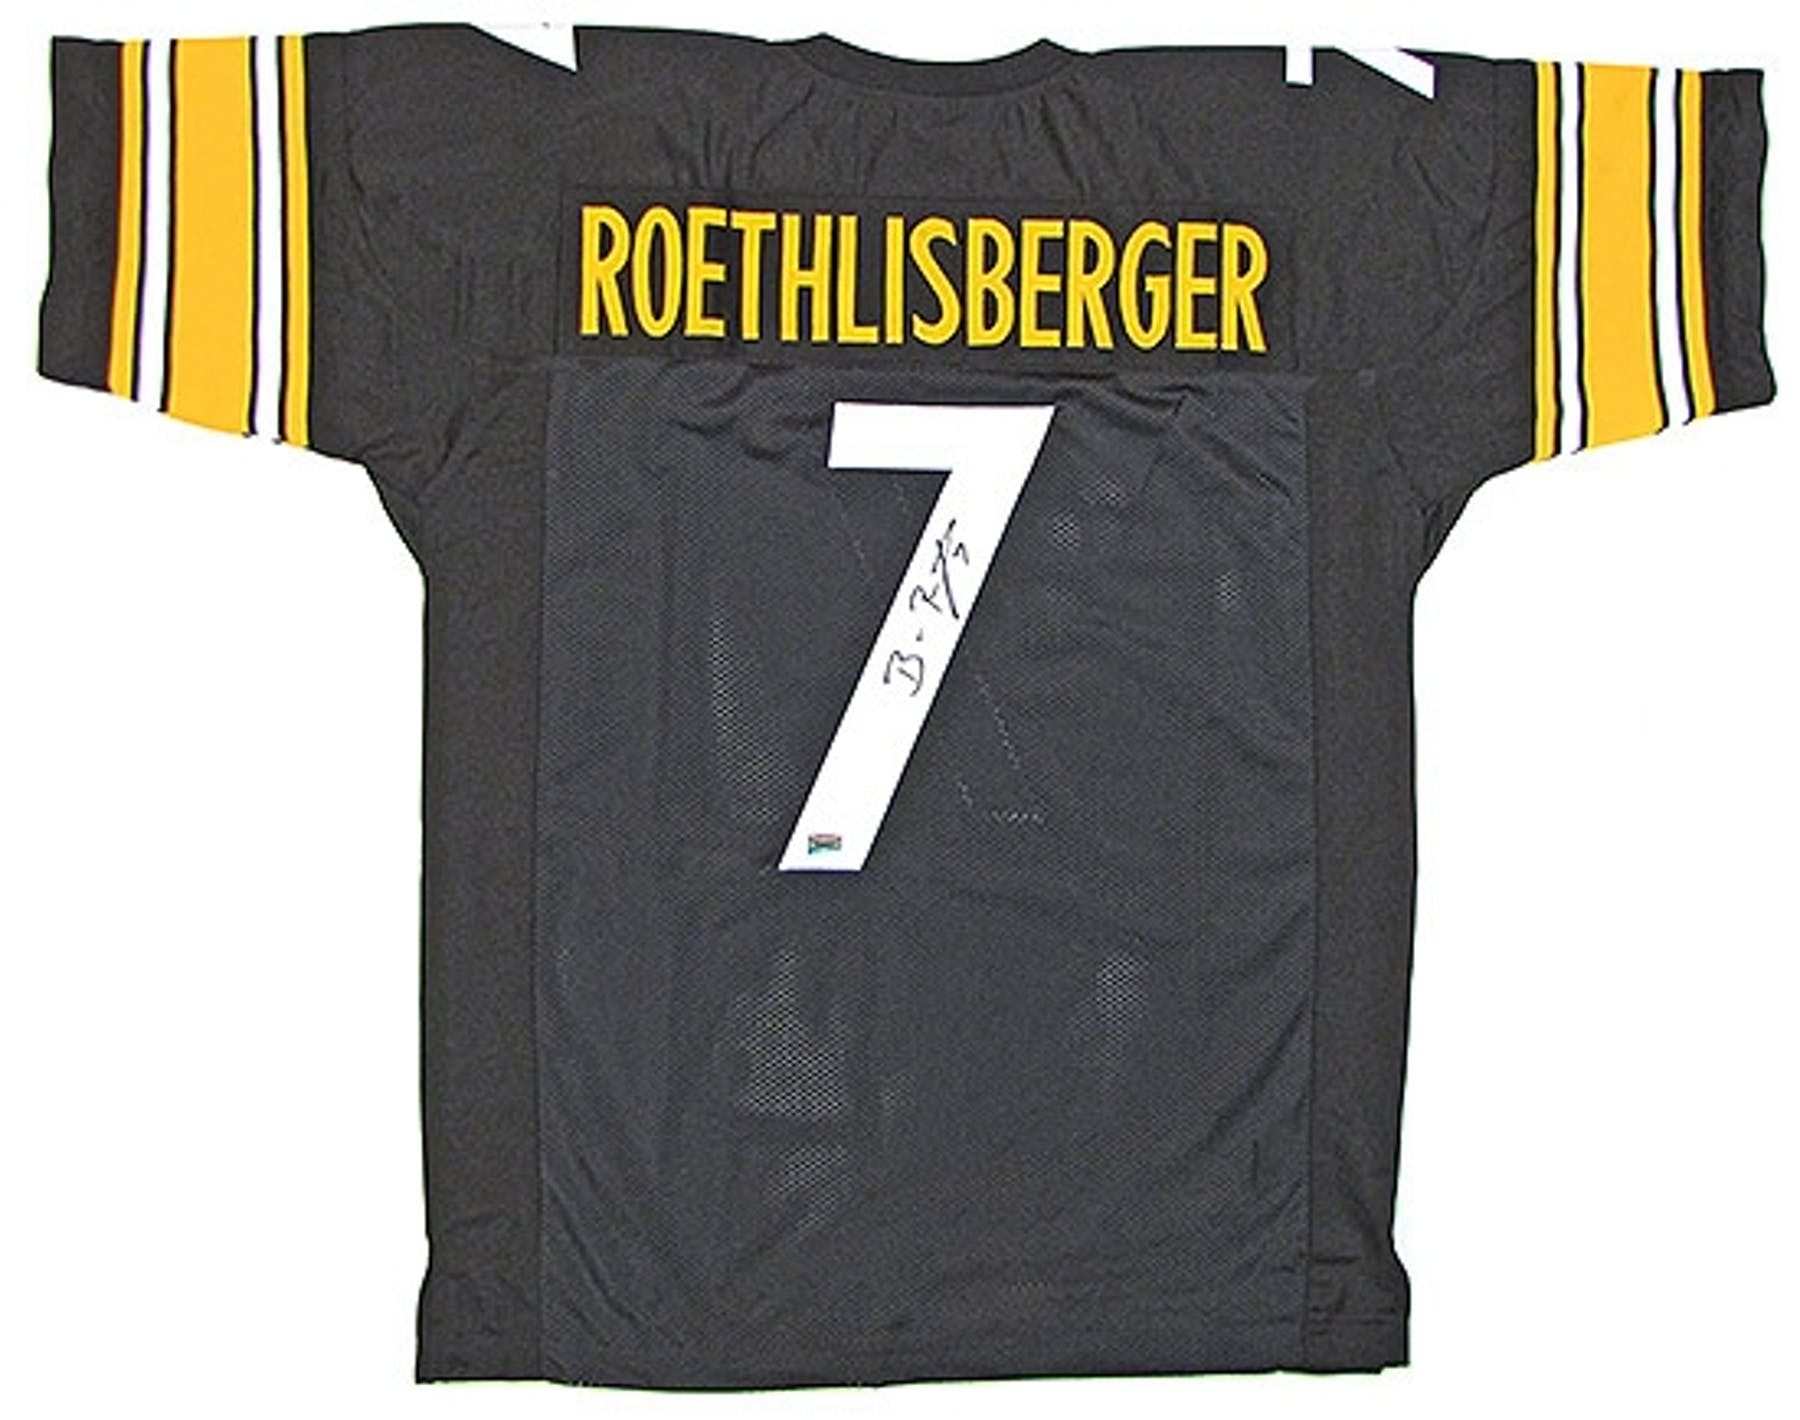 80ce909201e Ben Roethlisberger Autographed Pittsburgh Steelers Black Jersey ...